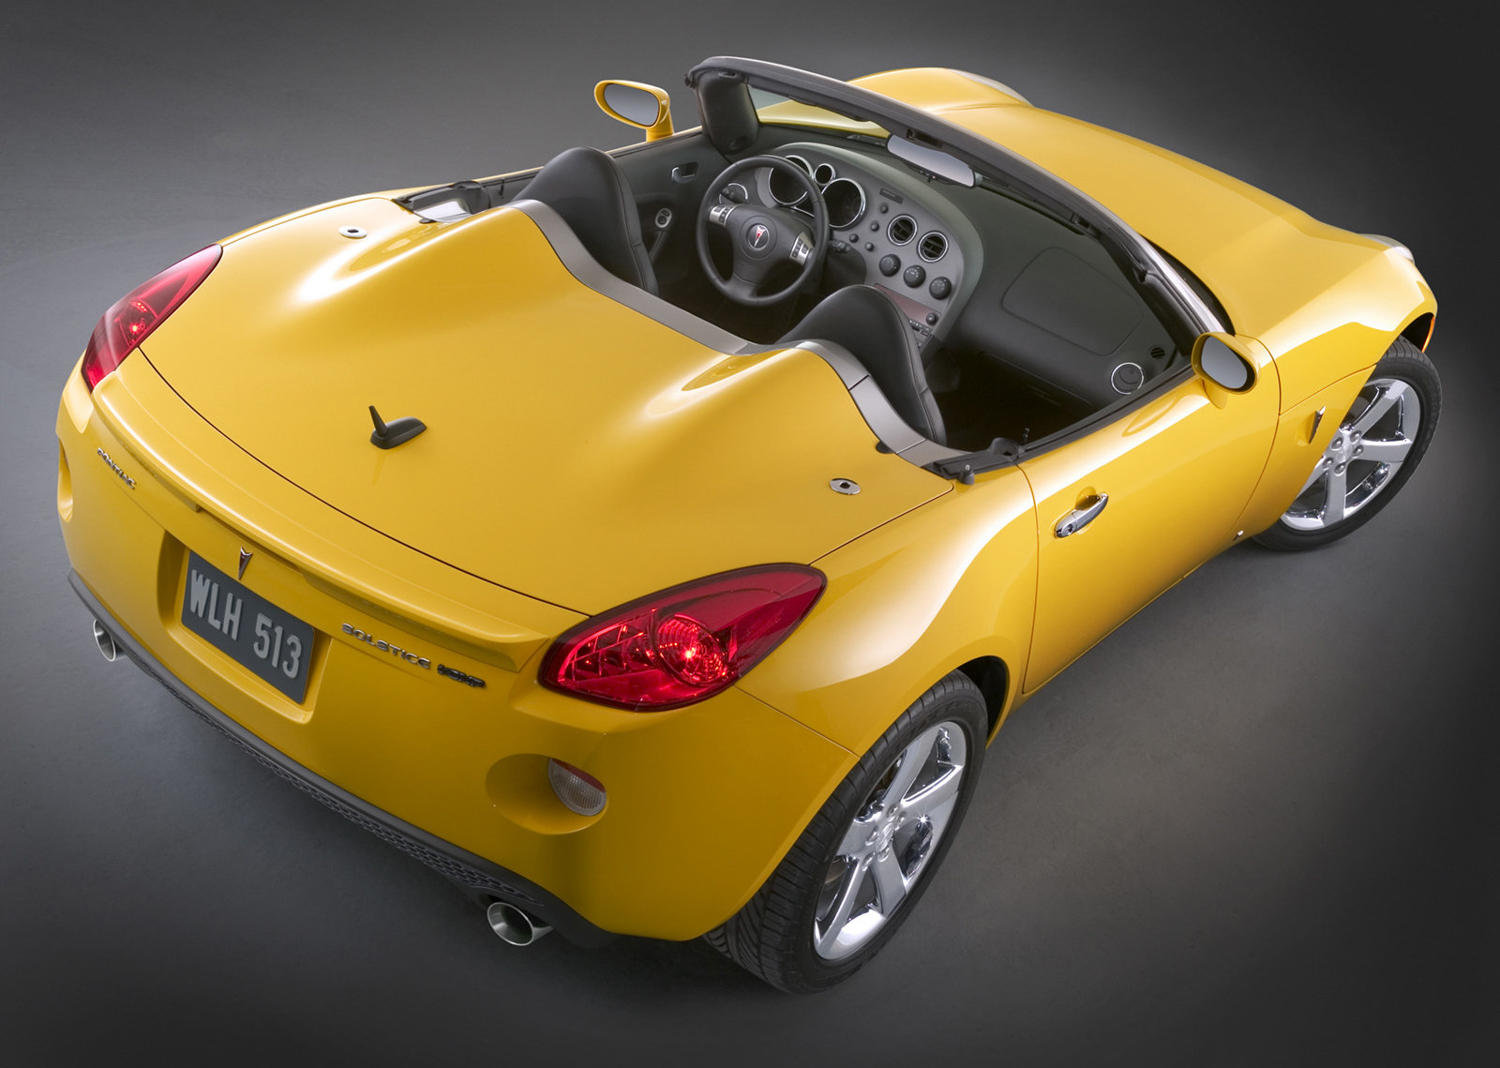 2007 Pontiac Solstice GXP 3/4 rear high